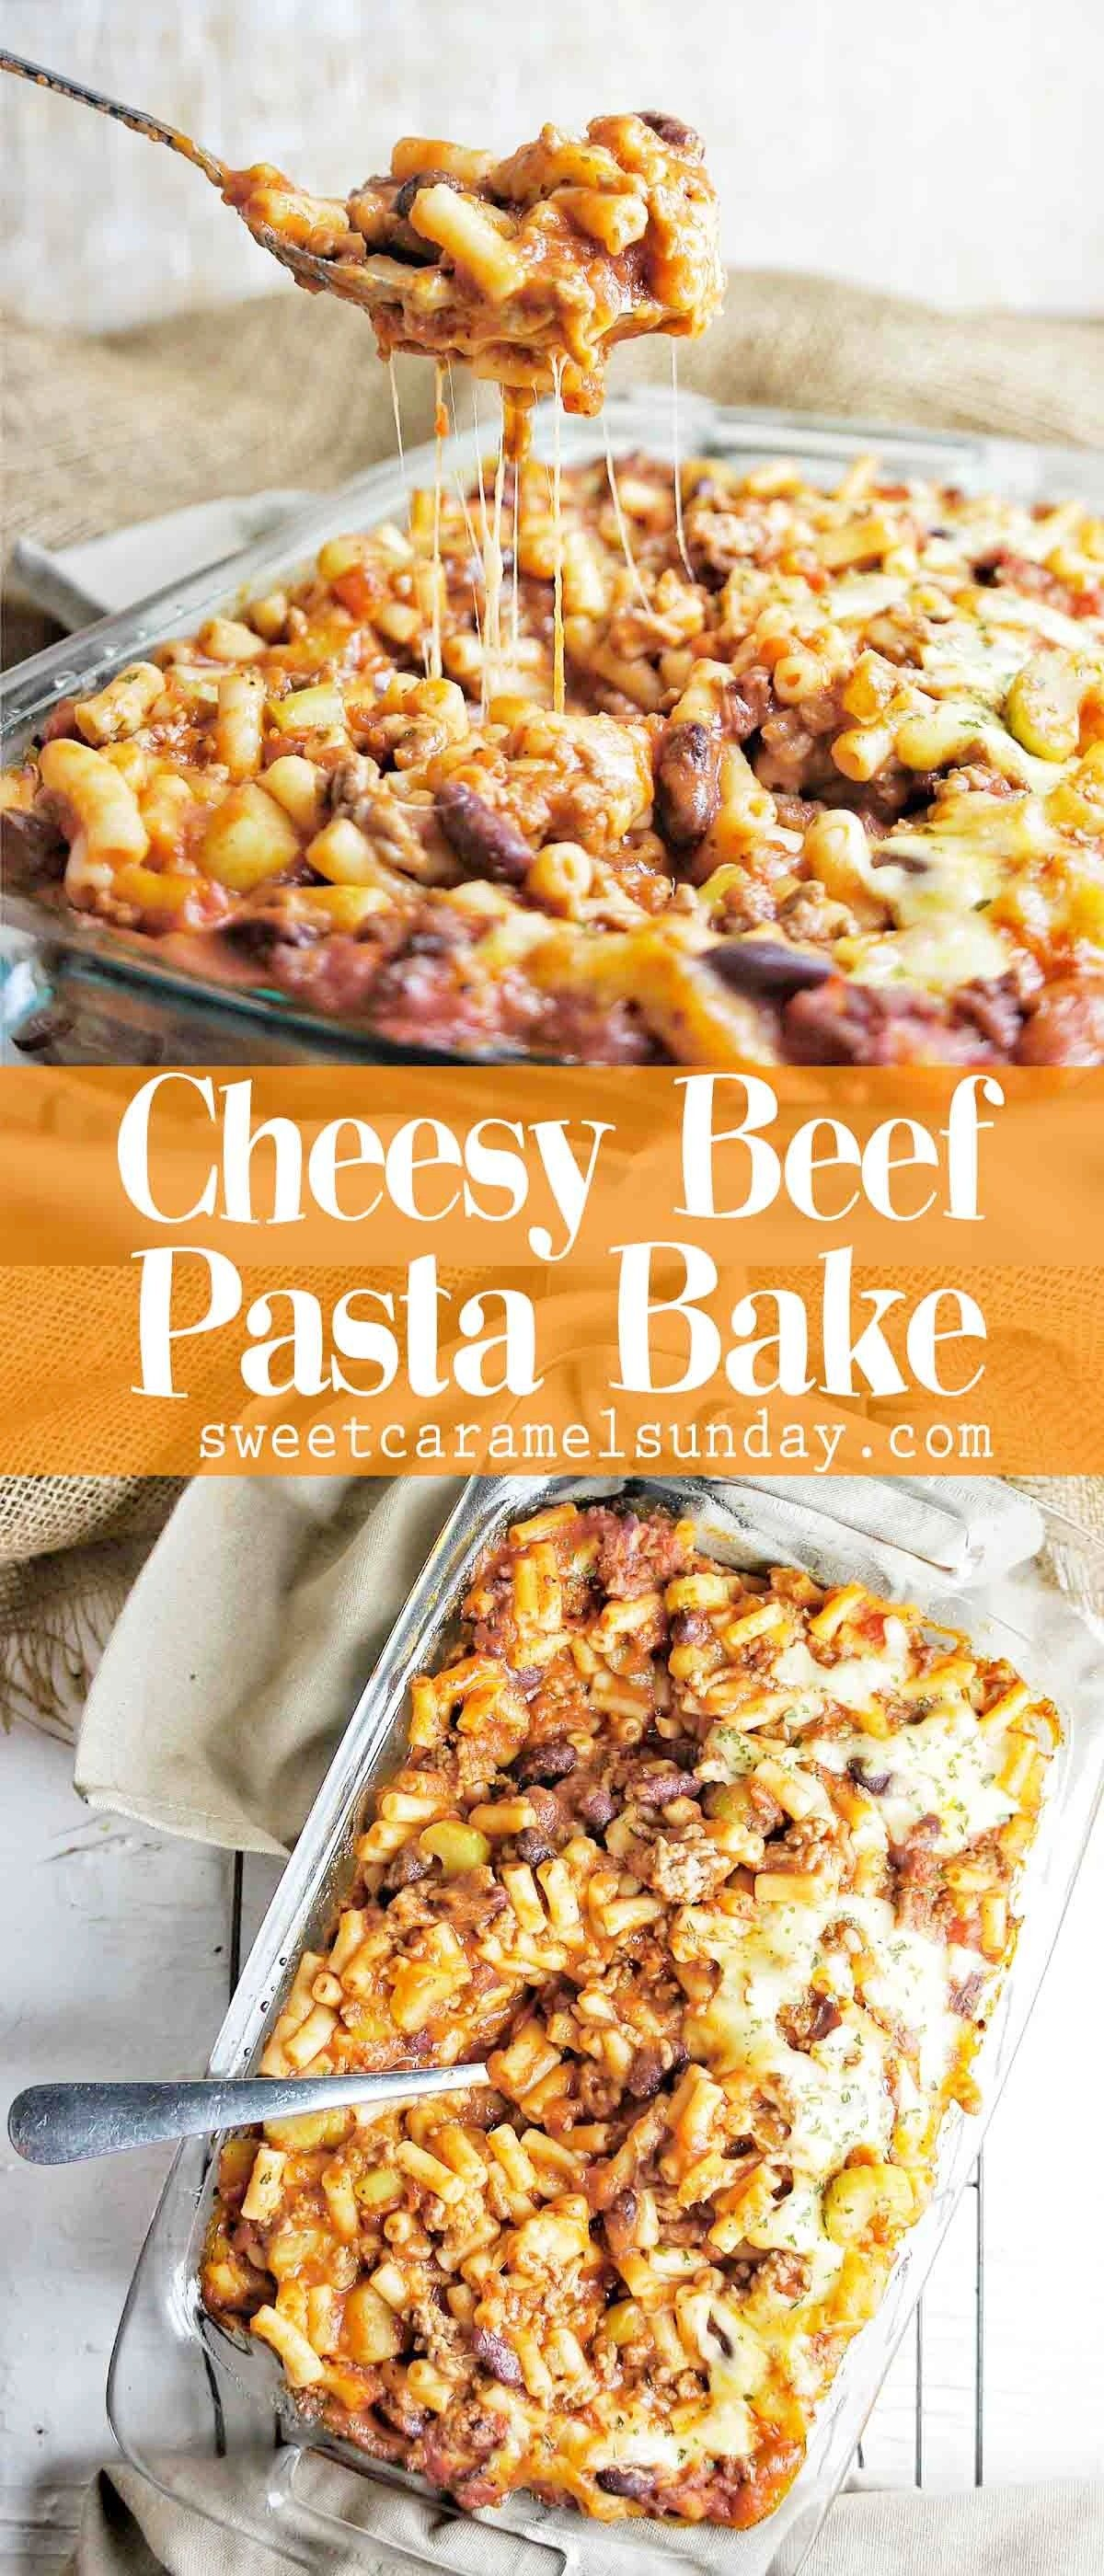 Cheesy Ground Beef Pasta Bake In A Rich Tomato Sauce Oven Baked To Perfection Cheese Easy Pasta Dinner Recipes Delicious Healthy Recipes Ground Beef Pasta